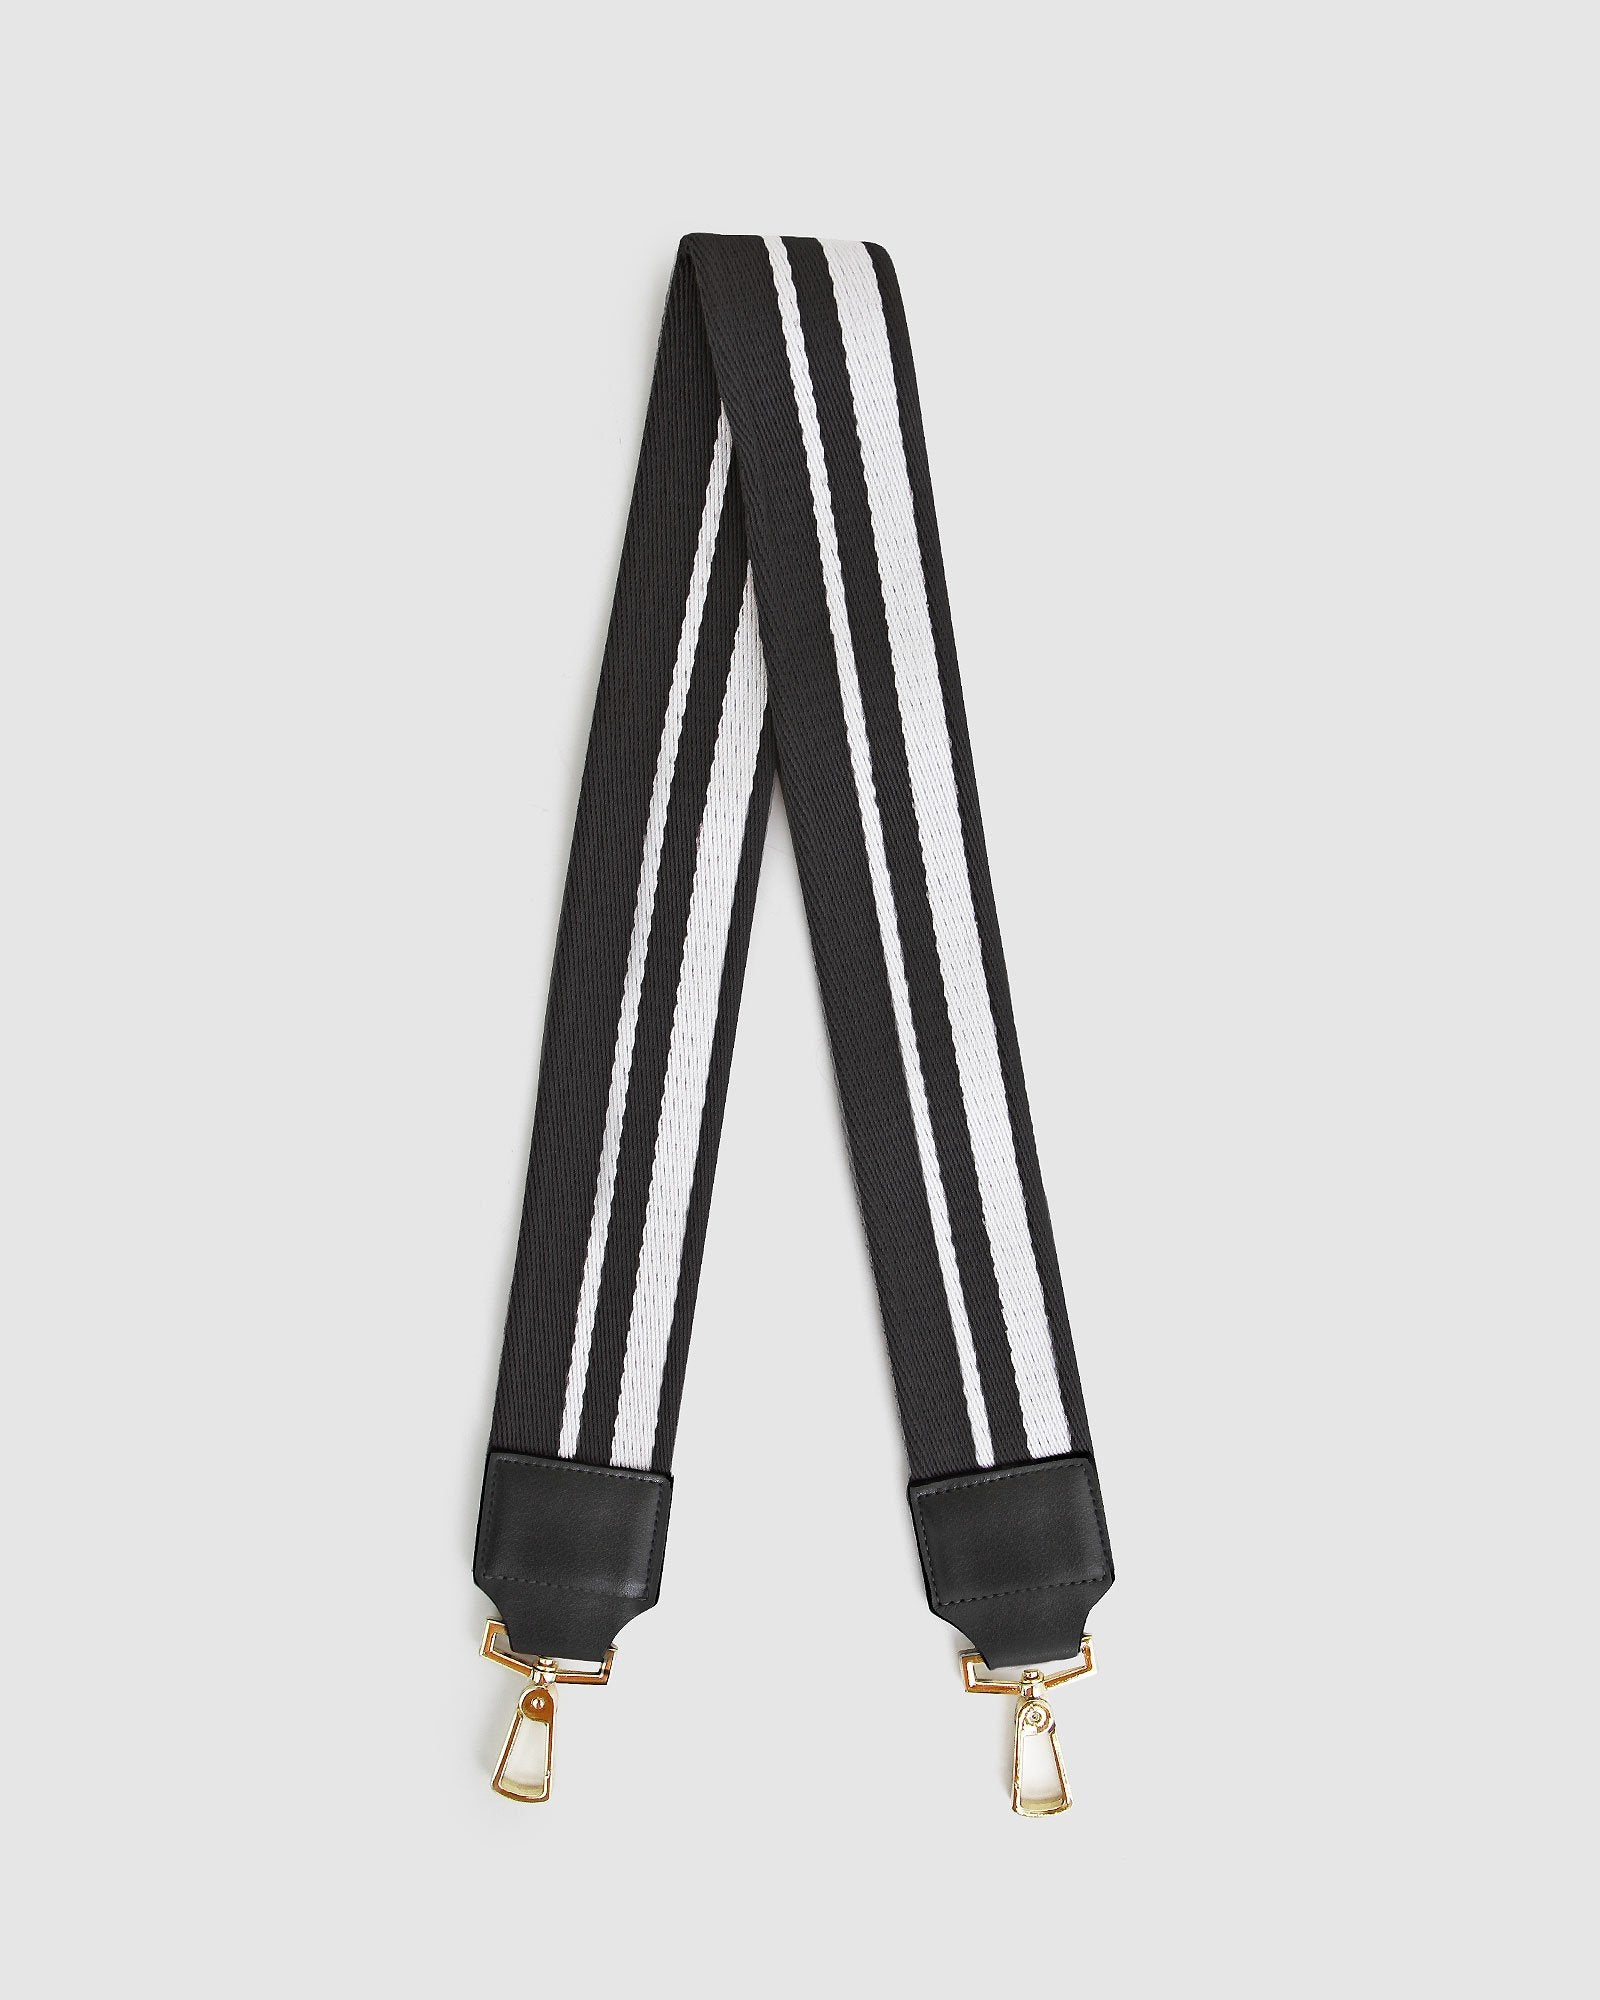 classic-shoulder-strap-black-golden-hardware.jpg